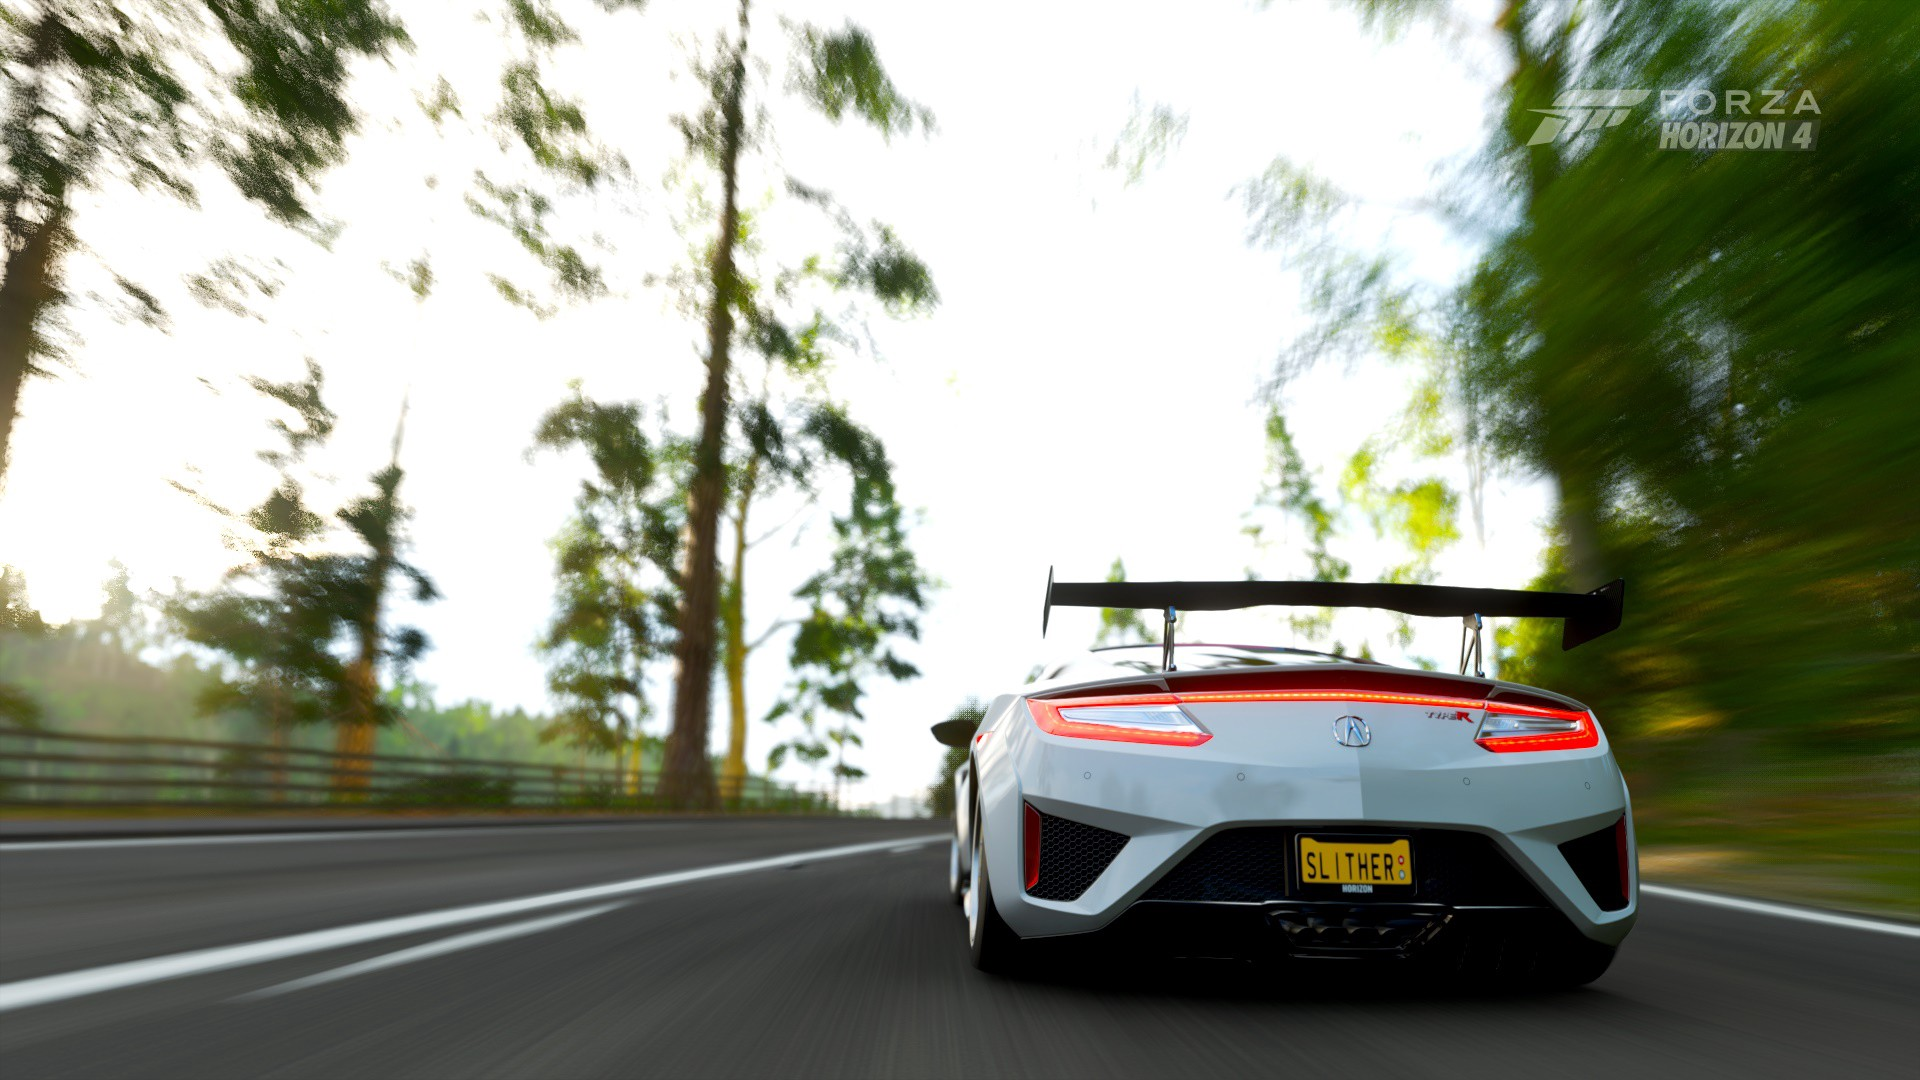 Forza Horizon 4 Continues The Tradition Of Redefining The Racing Genre